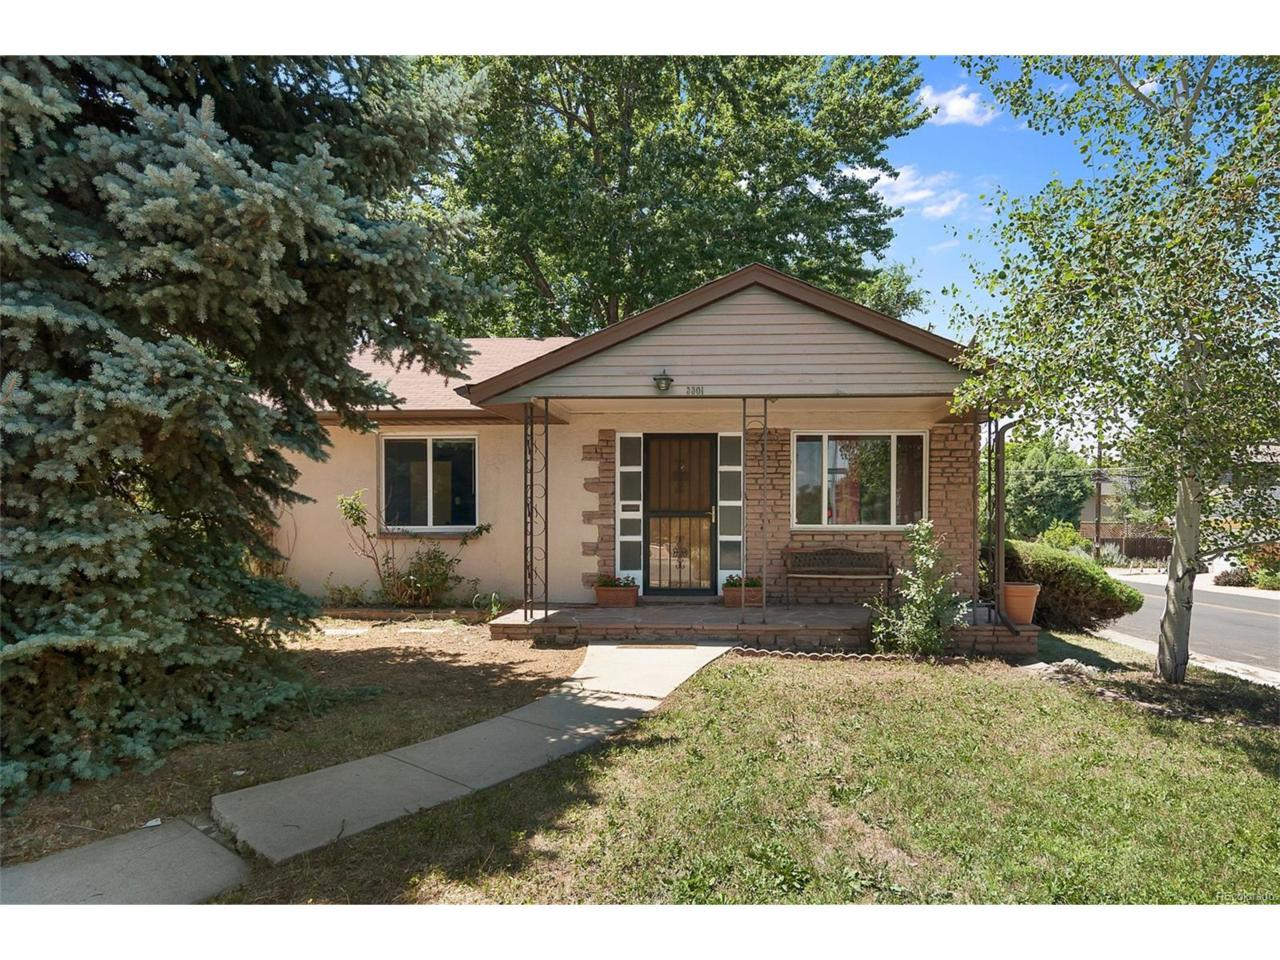 3301 S Downing Street, Englewood, CO 80113 (MLS #8187985) :: 8z Real Estate